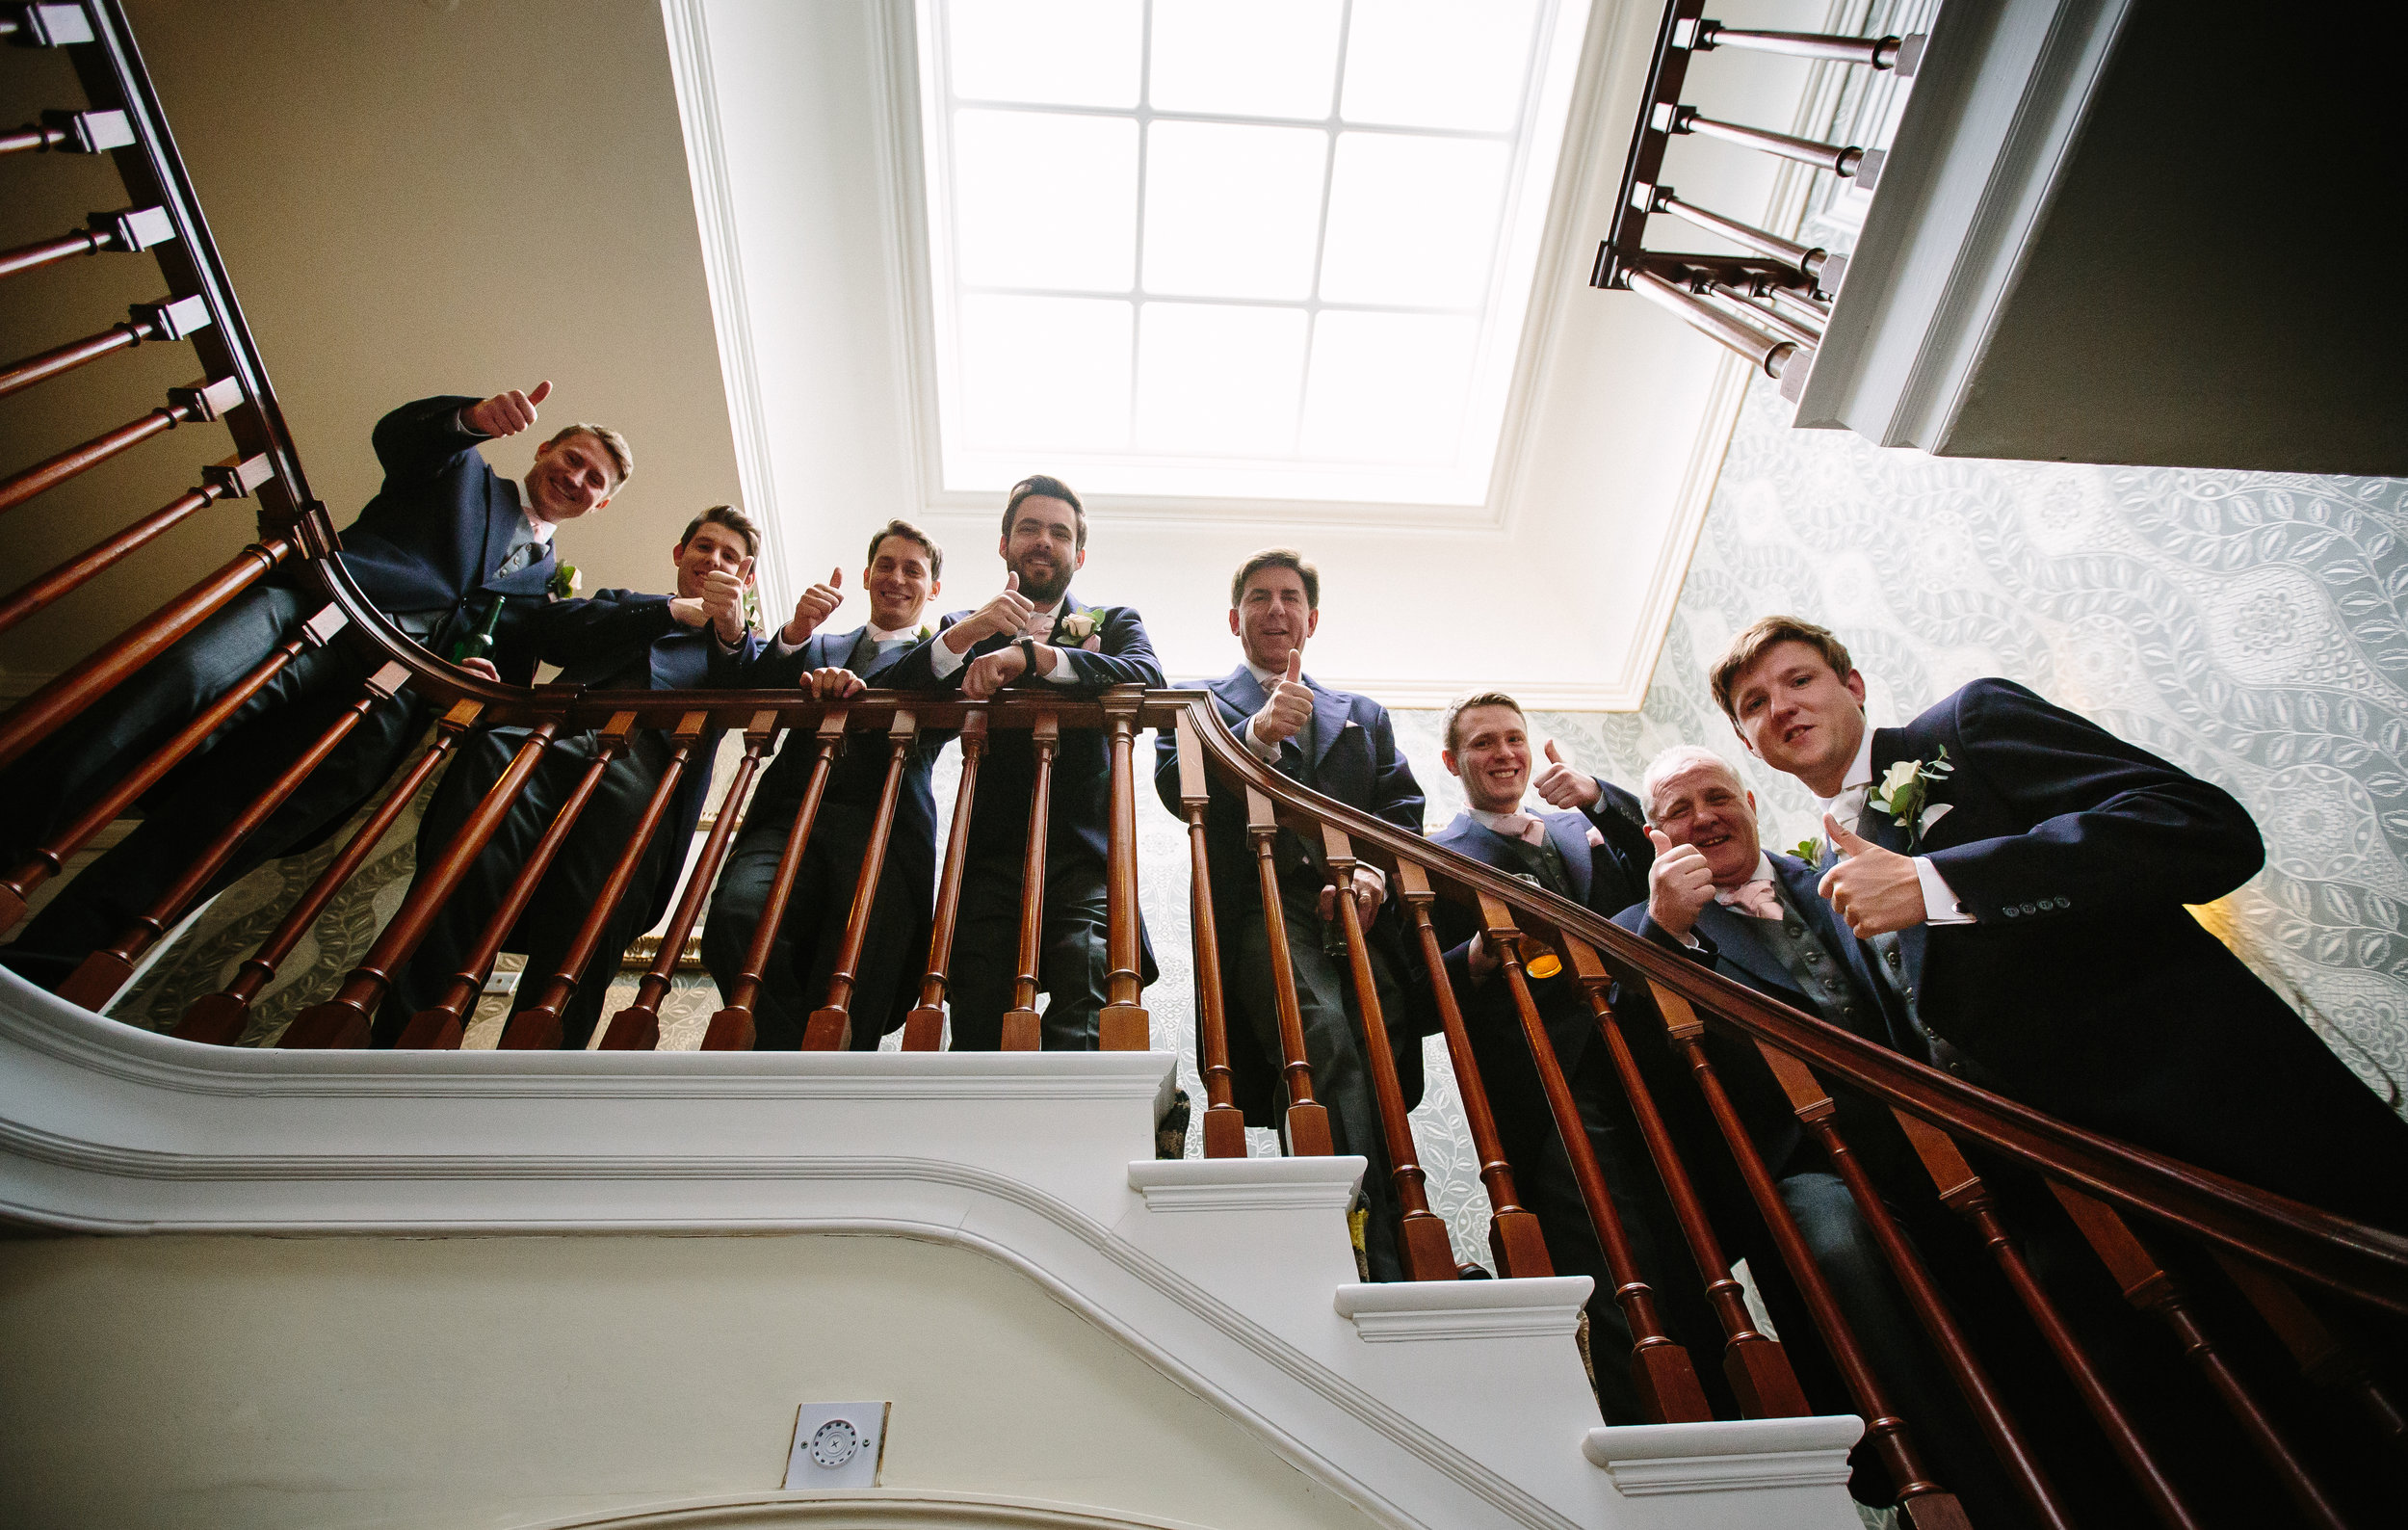 surrey-ascot-royal-berkshire-hotel-autumn-wedding-groomsmen-8